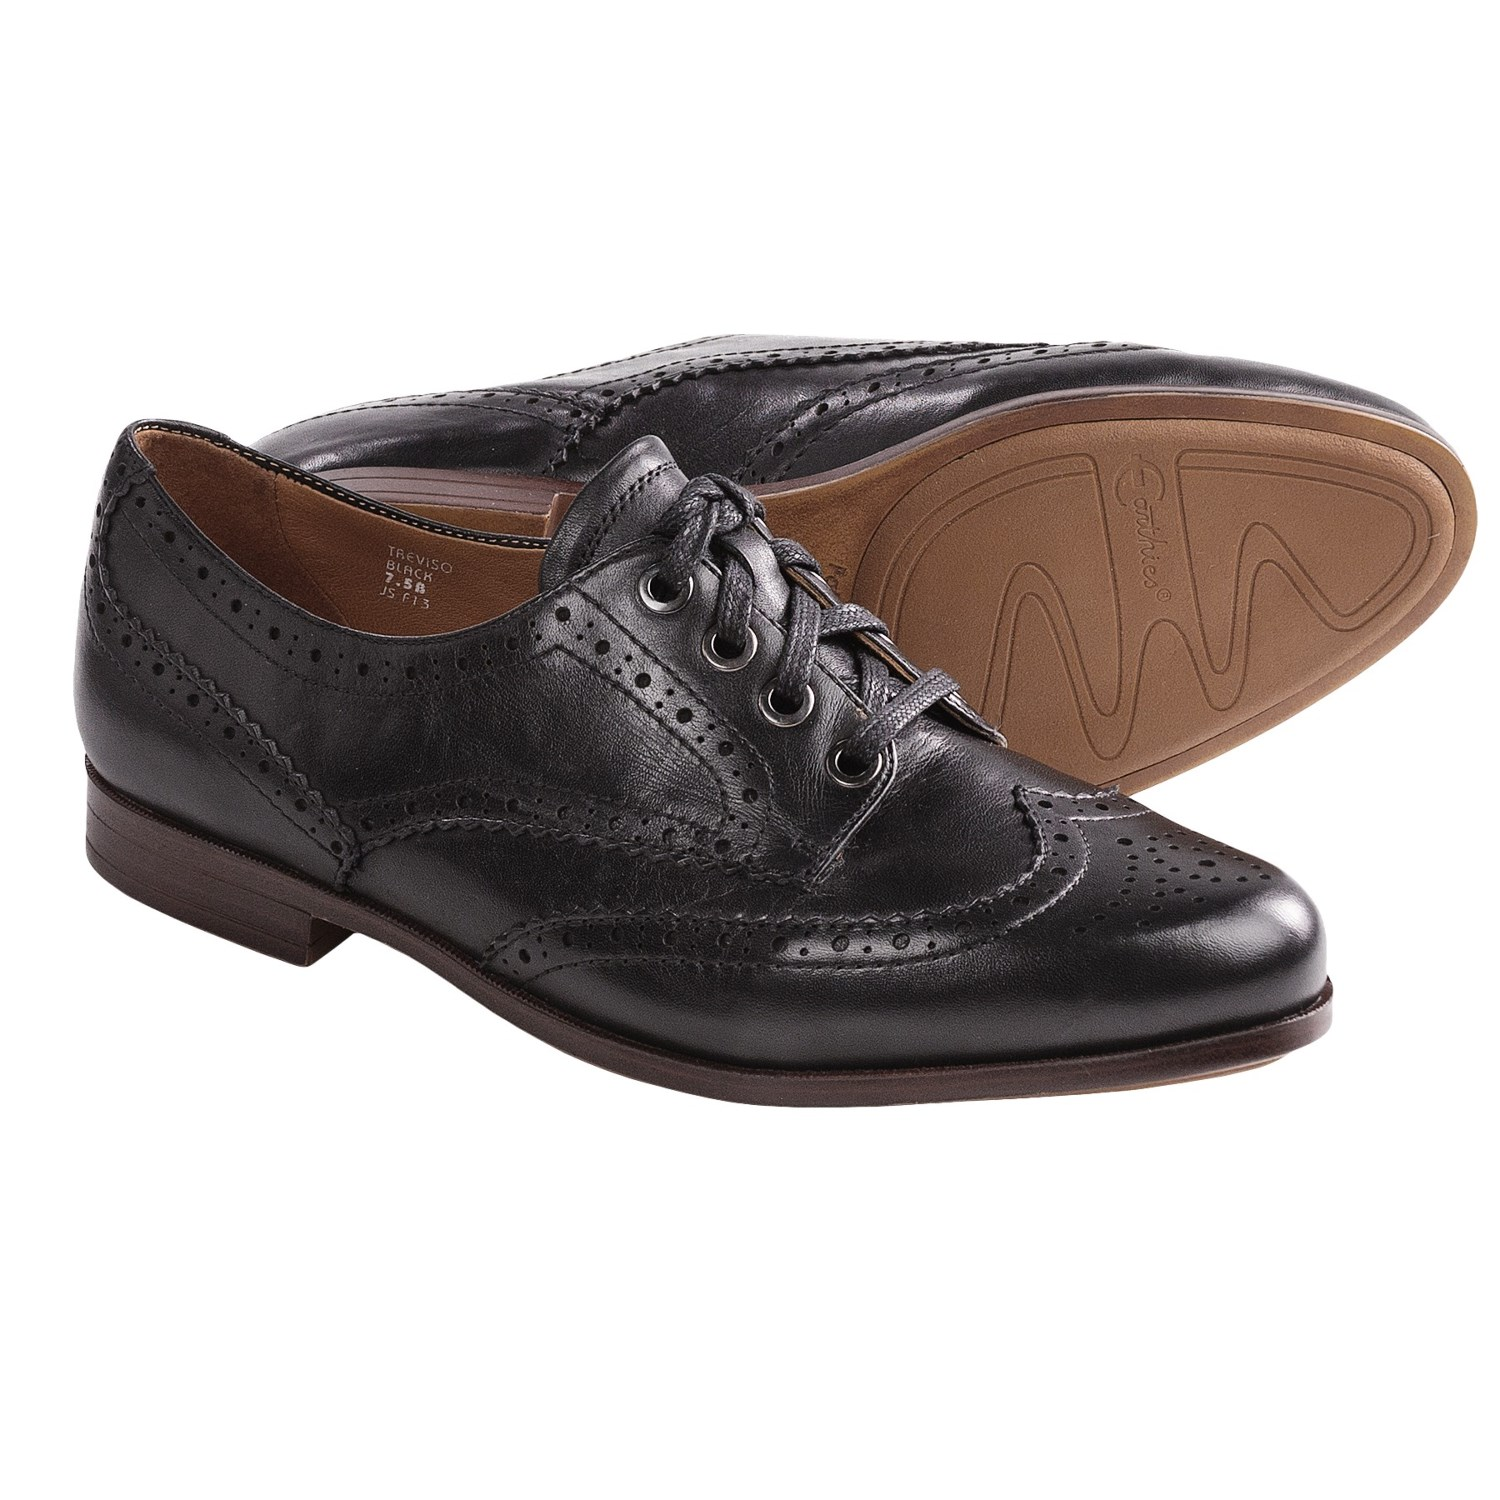 Earthies Treviso Wingtip Shoes - Oxfords (For Women) in Black Calf